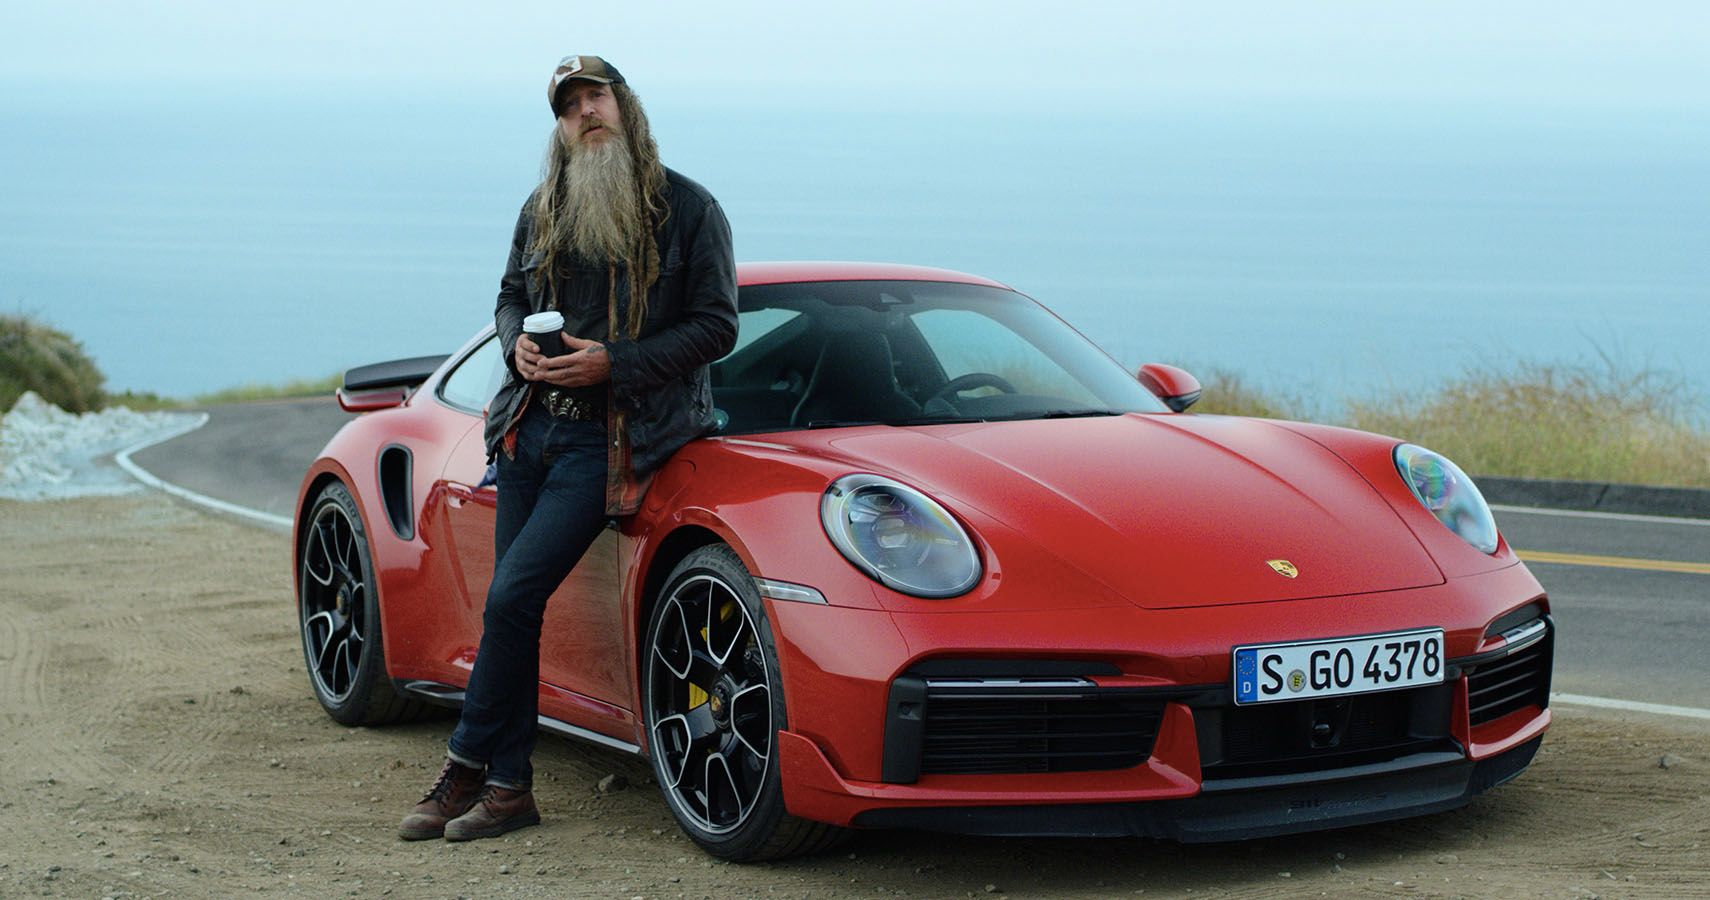 EXCLUSIVE: Here's What Magnus Walker Thinks About The Porsche 911's Past, Present And Future